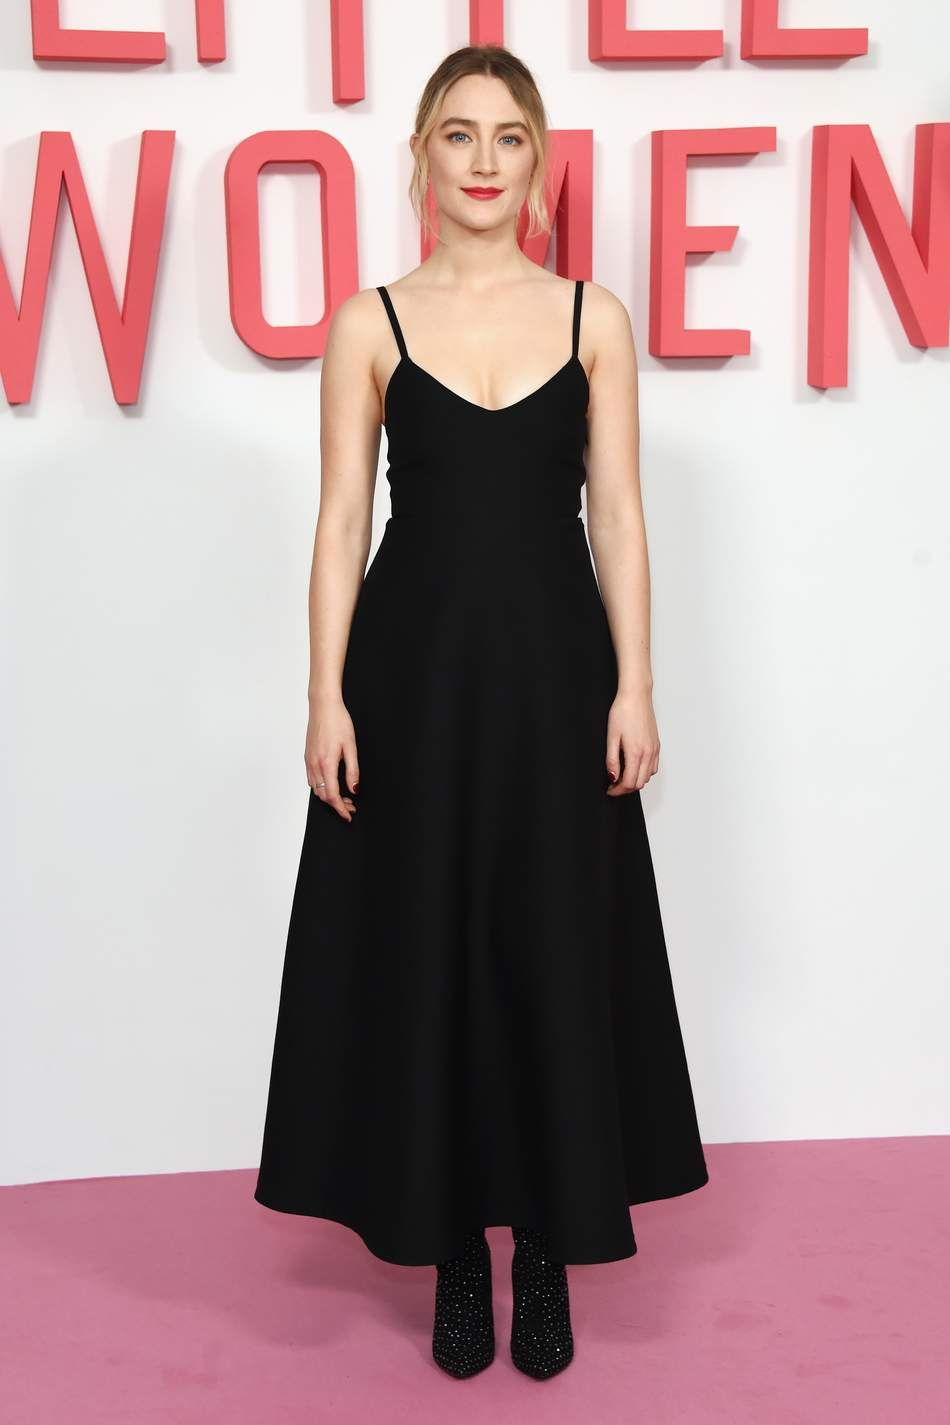 Who Saoirse Ronan What A Simple Black Dress By Maison Valentino And Bejeweled Pointed Boots Prove That Less Can Black Dress Red Carpet Nice Dresses Dresses [ 1425 x 950 Pixel ]